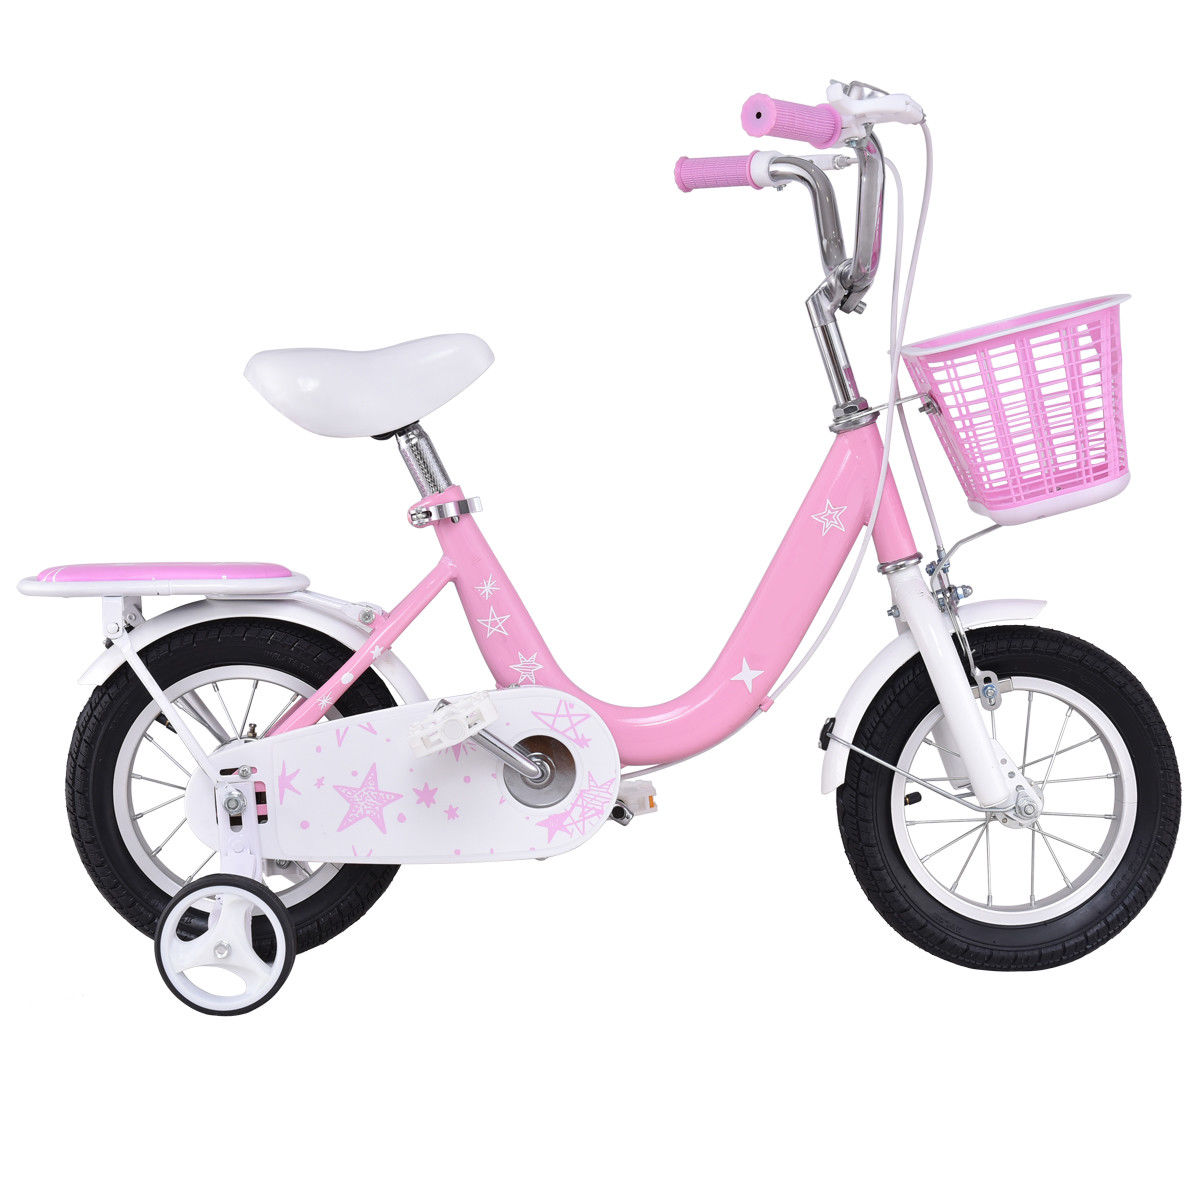 Costway 16'' Kids Bike Bicycle Children Boys & Girls with Training Wheels and Basket Pink by Costway